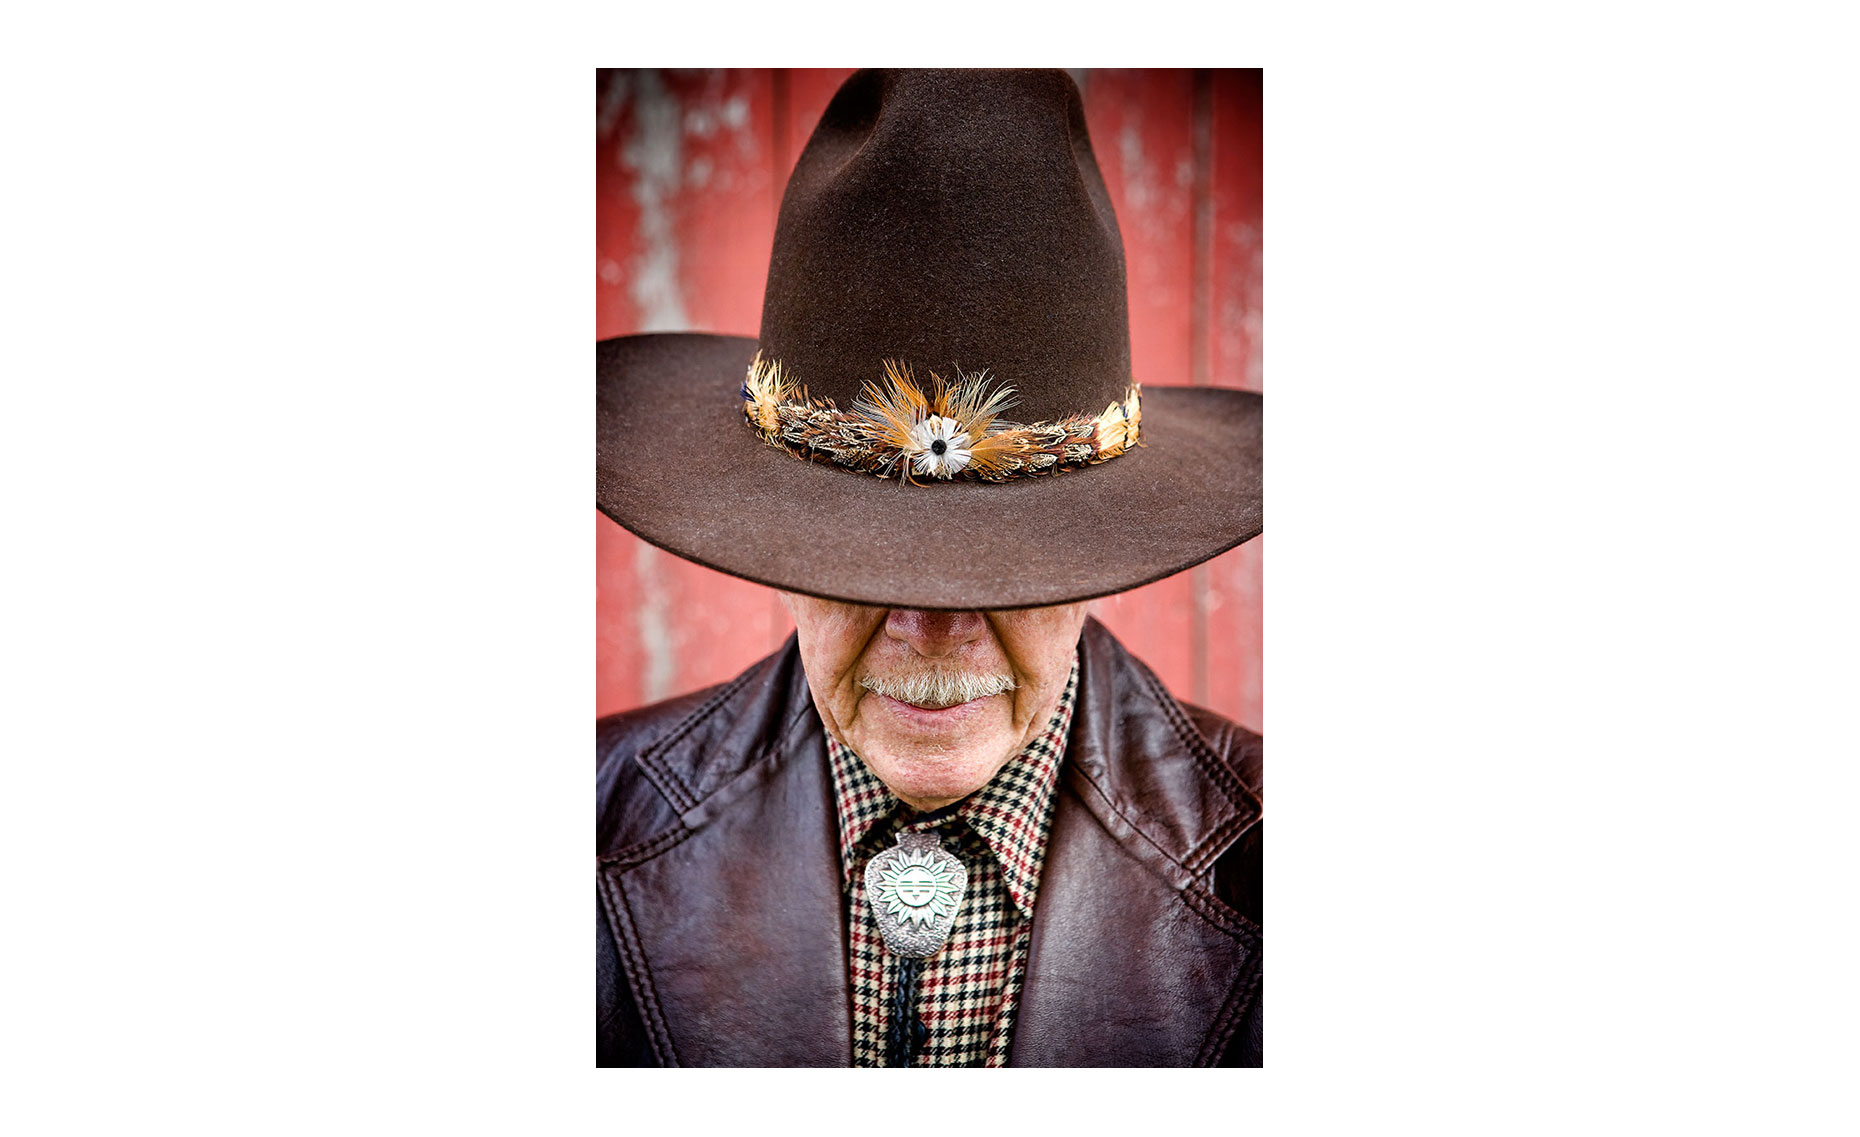 Cowboy Portrait | Neil Fraser Photography | Neil Fraser Photographer